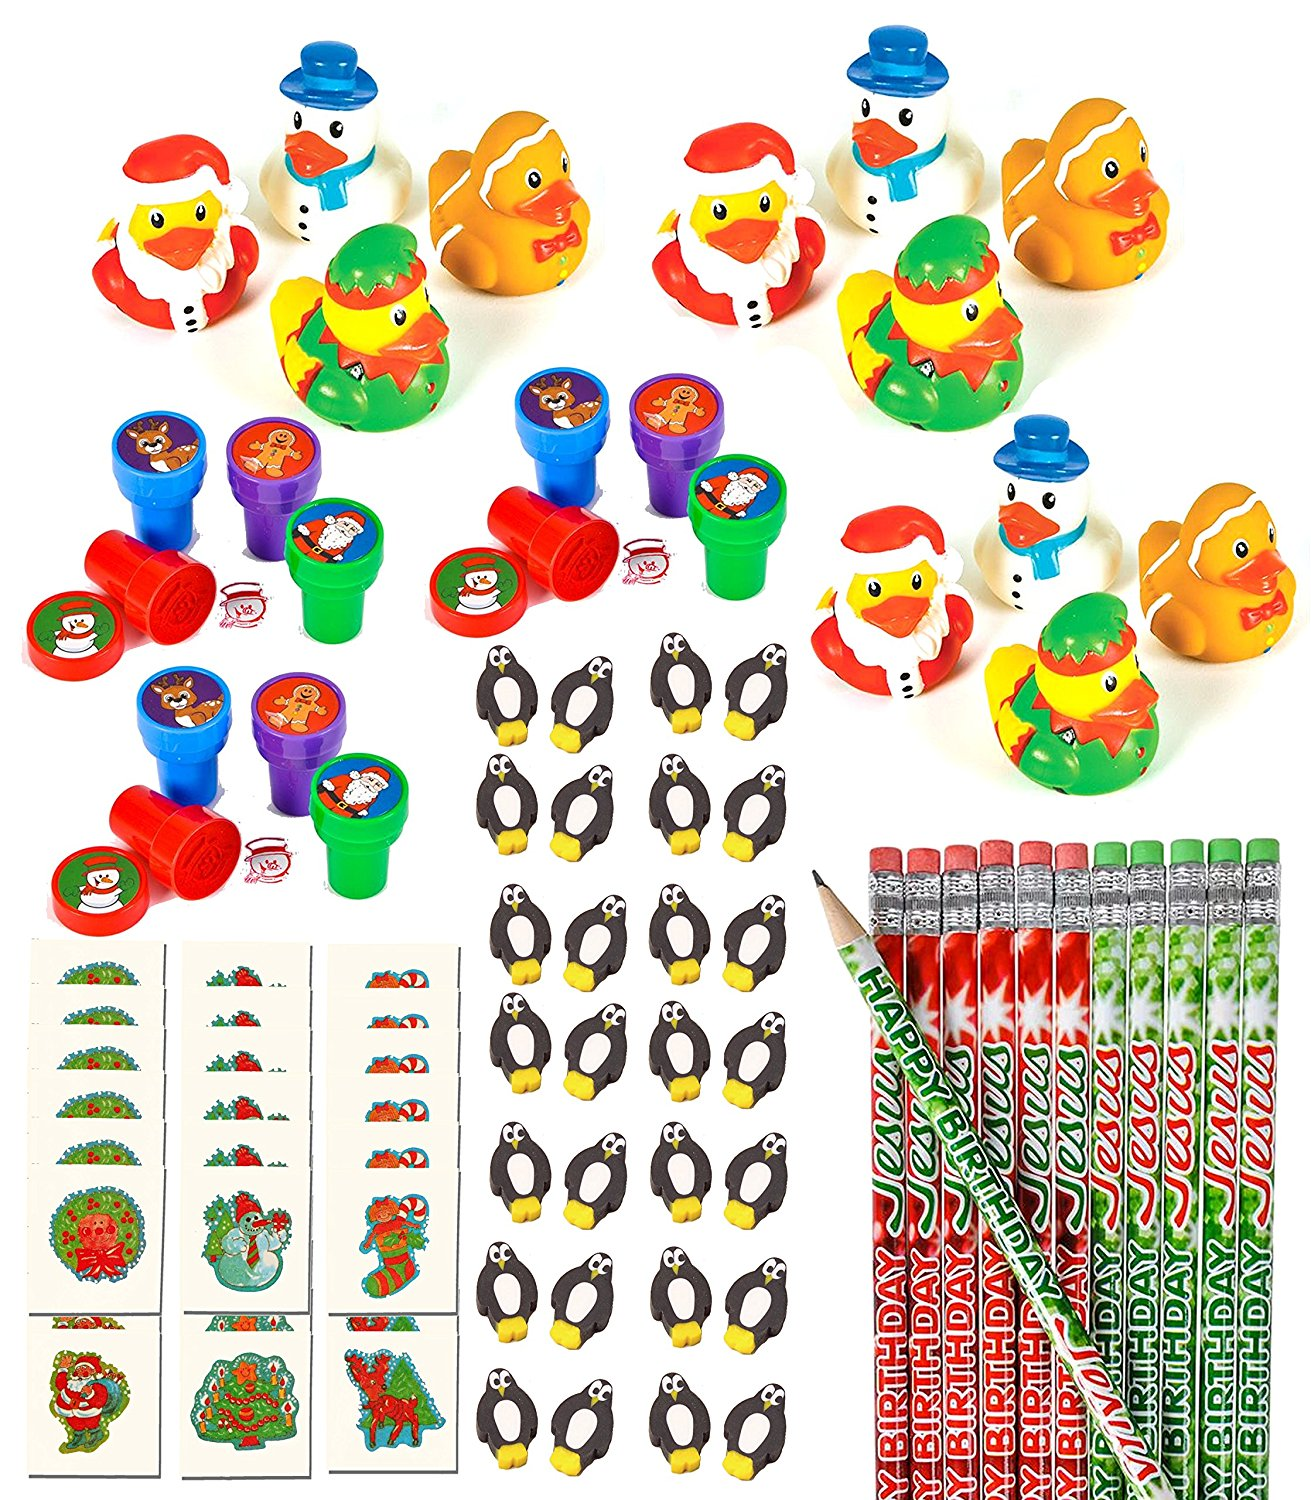 100 Piece Bulk Christmas Themed Party Favor Assortment Pack for Kids Stocking Stuffers, Holiday Parties, or Classroom